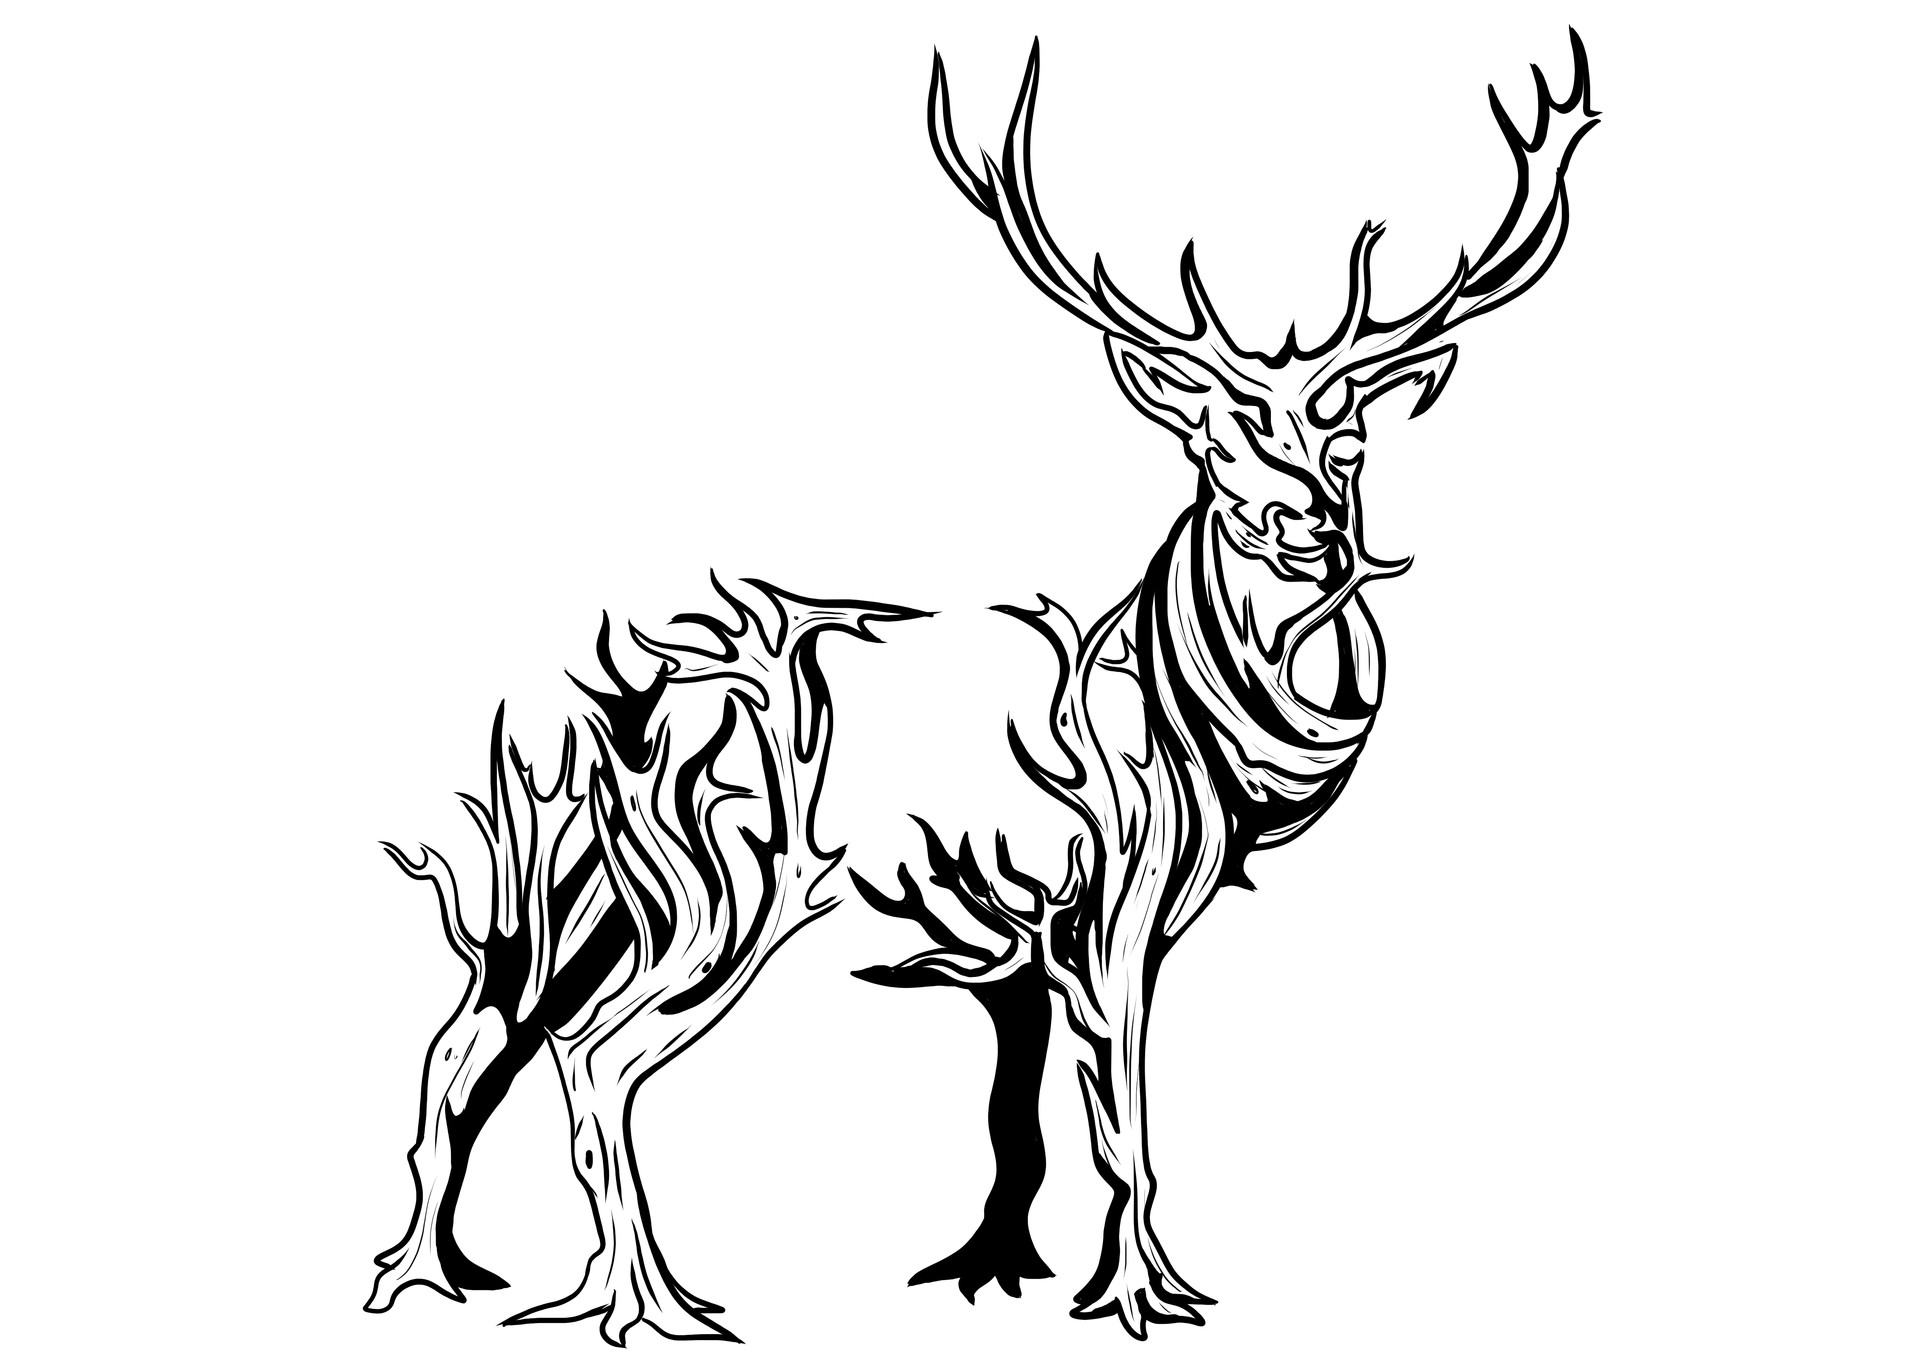 Deer made from a growing tree